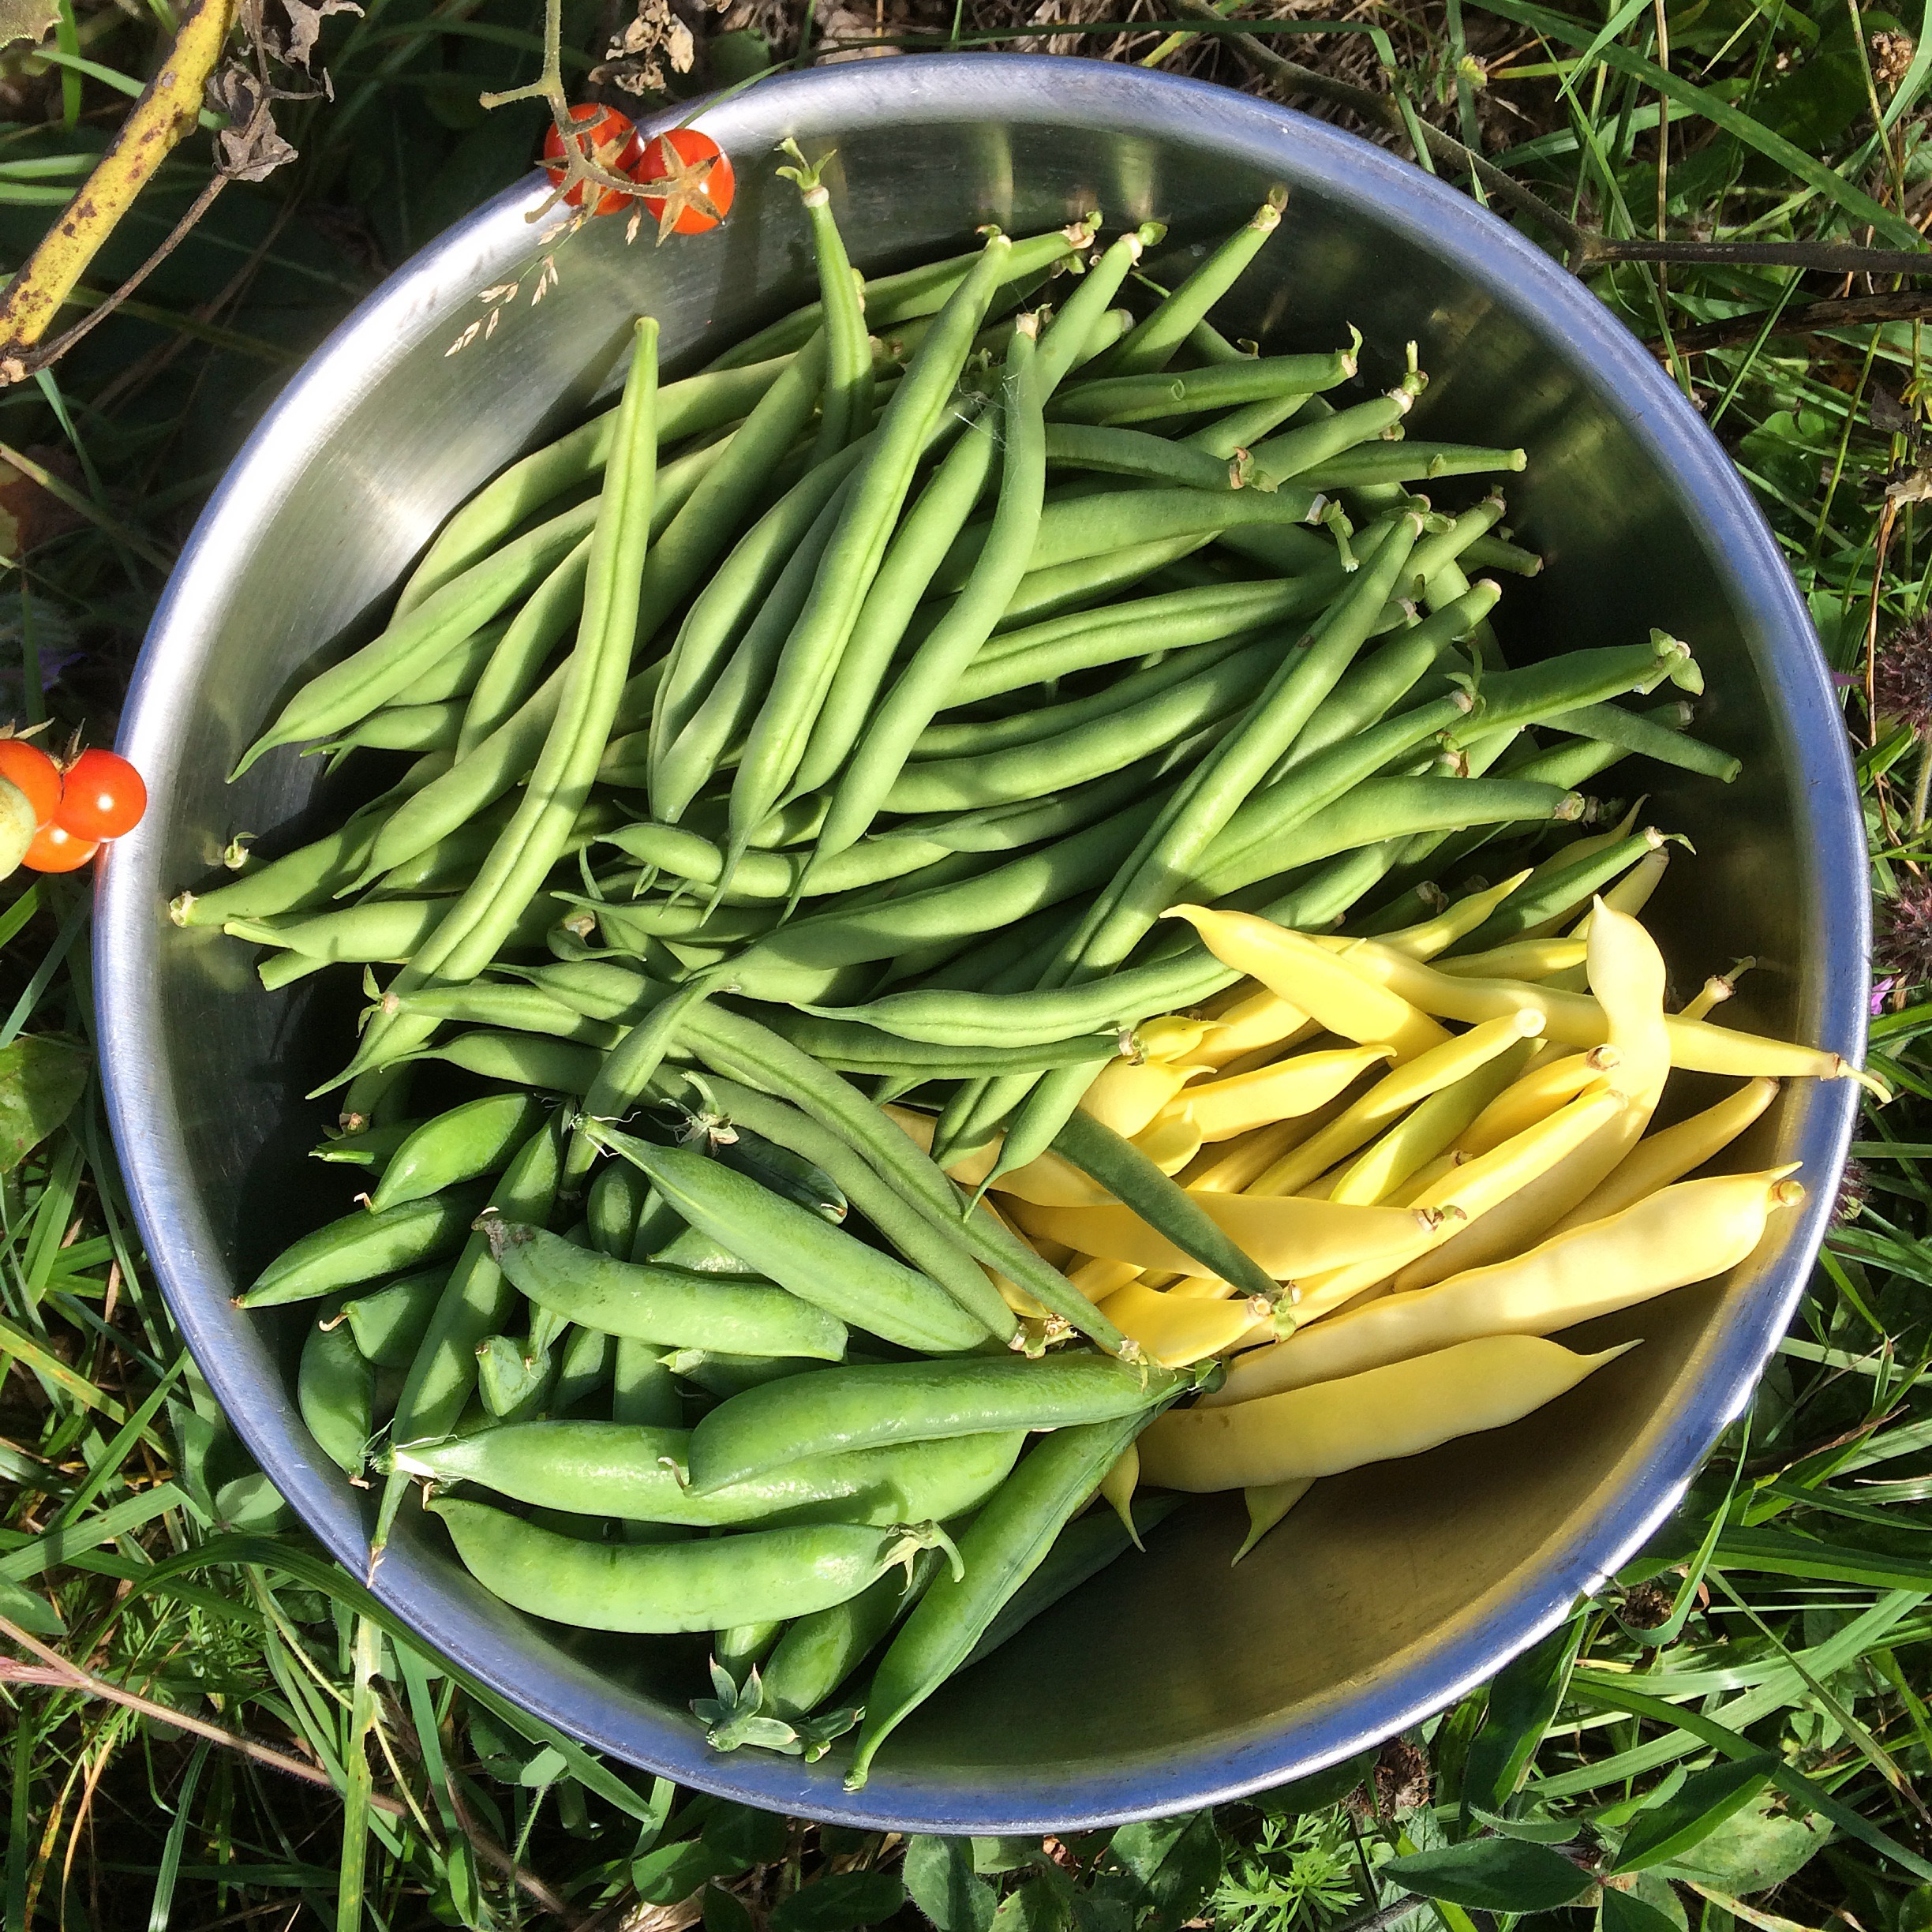 Green beans, yellow broad beans and peas